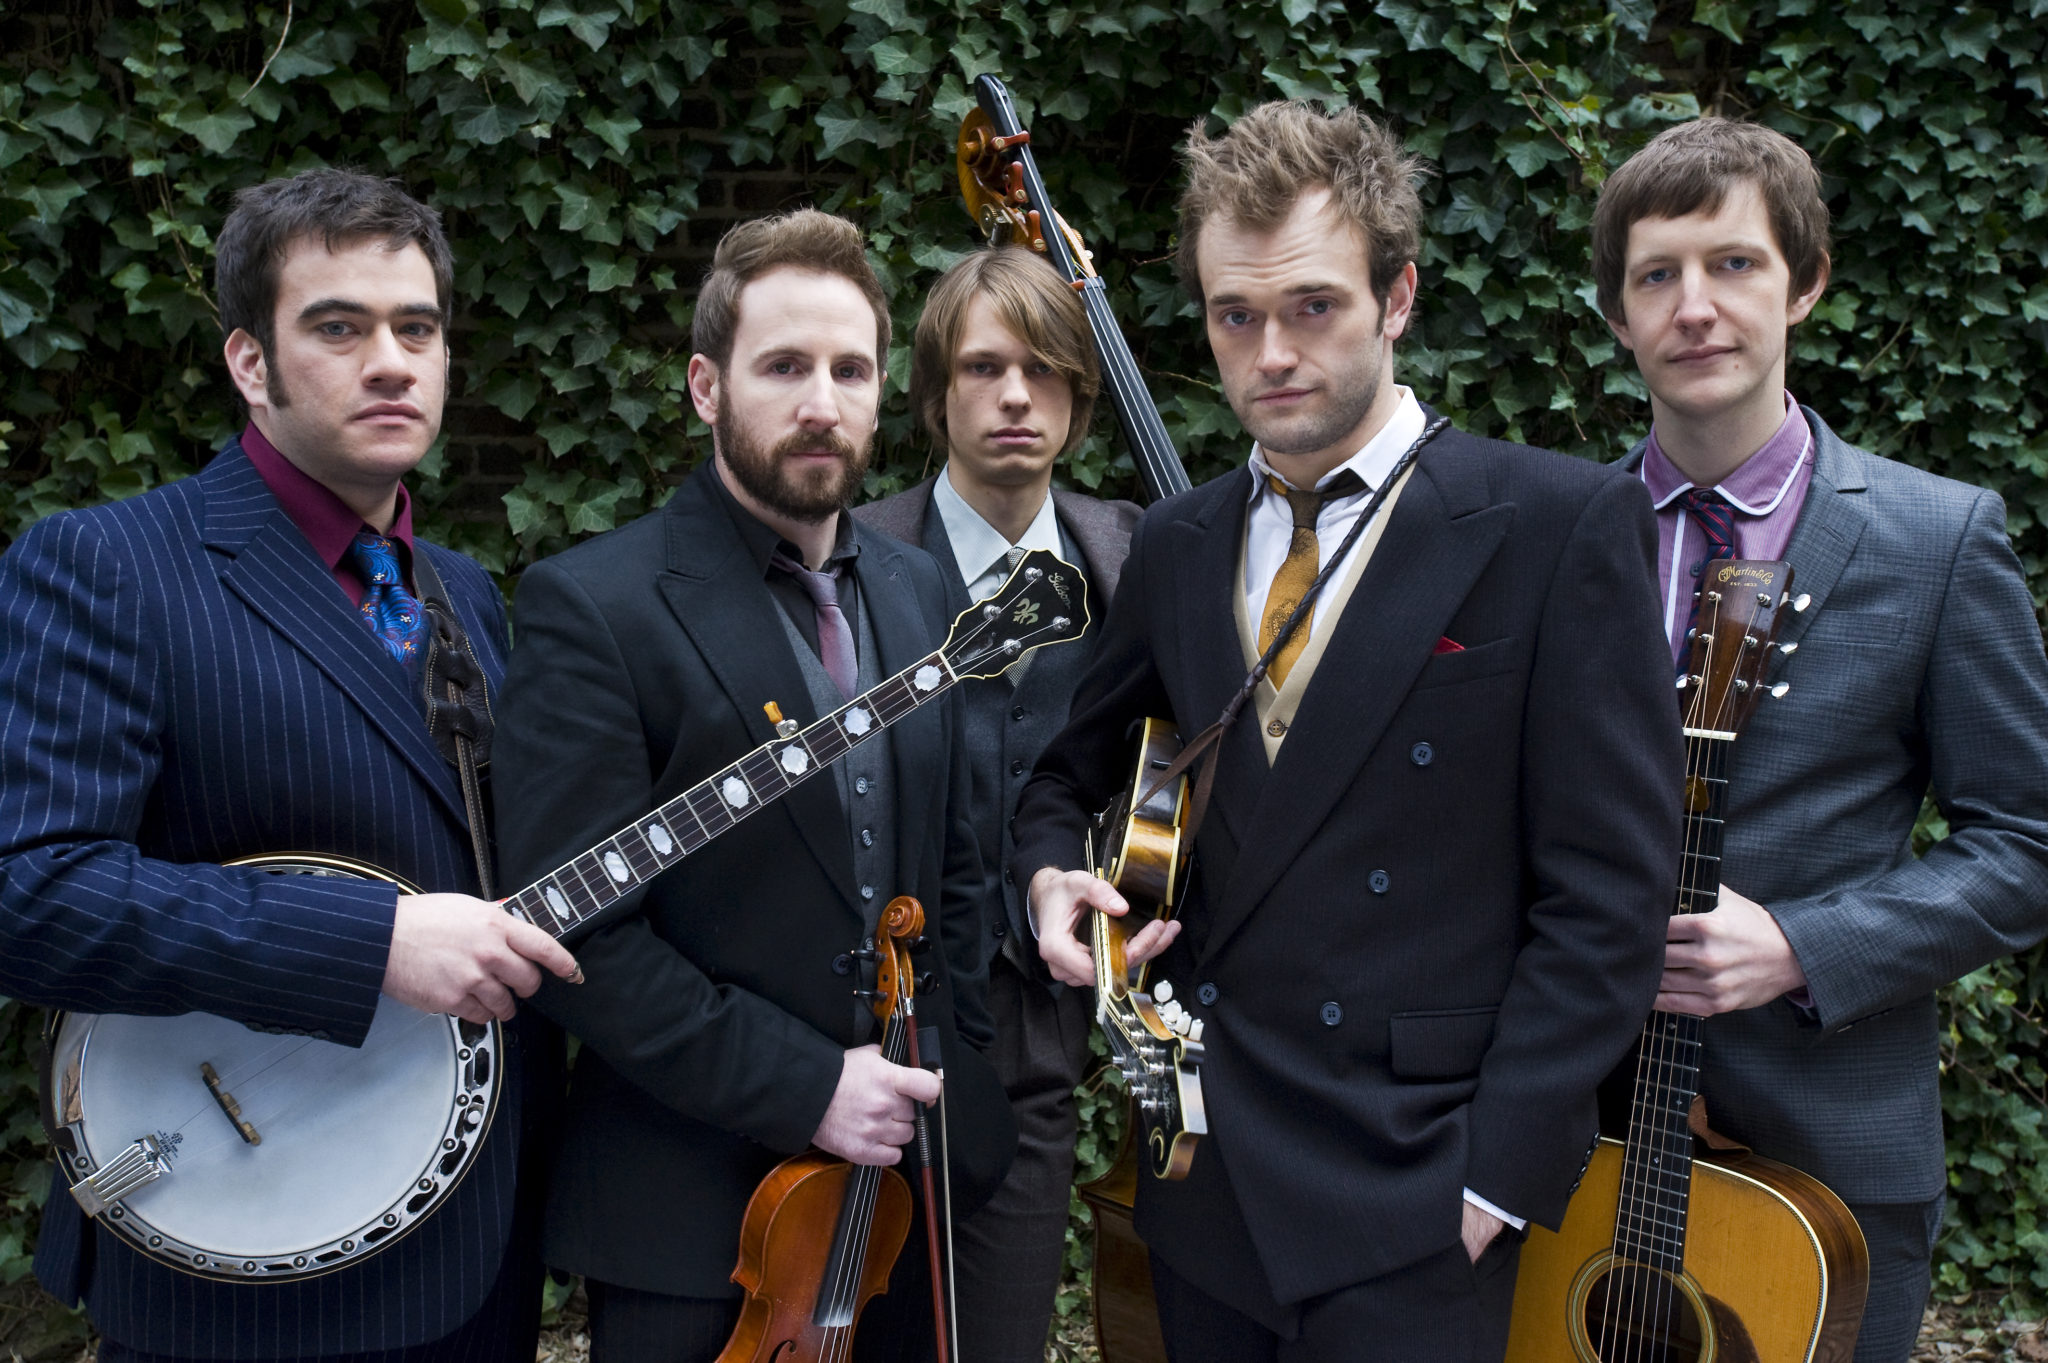 The Punch Brothers play at 8 p.m. Saturday, March 28 in Harrah's Lake Tahoe.